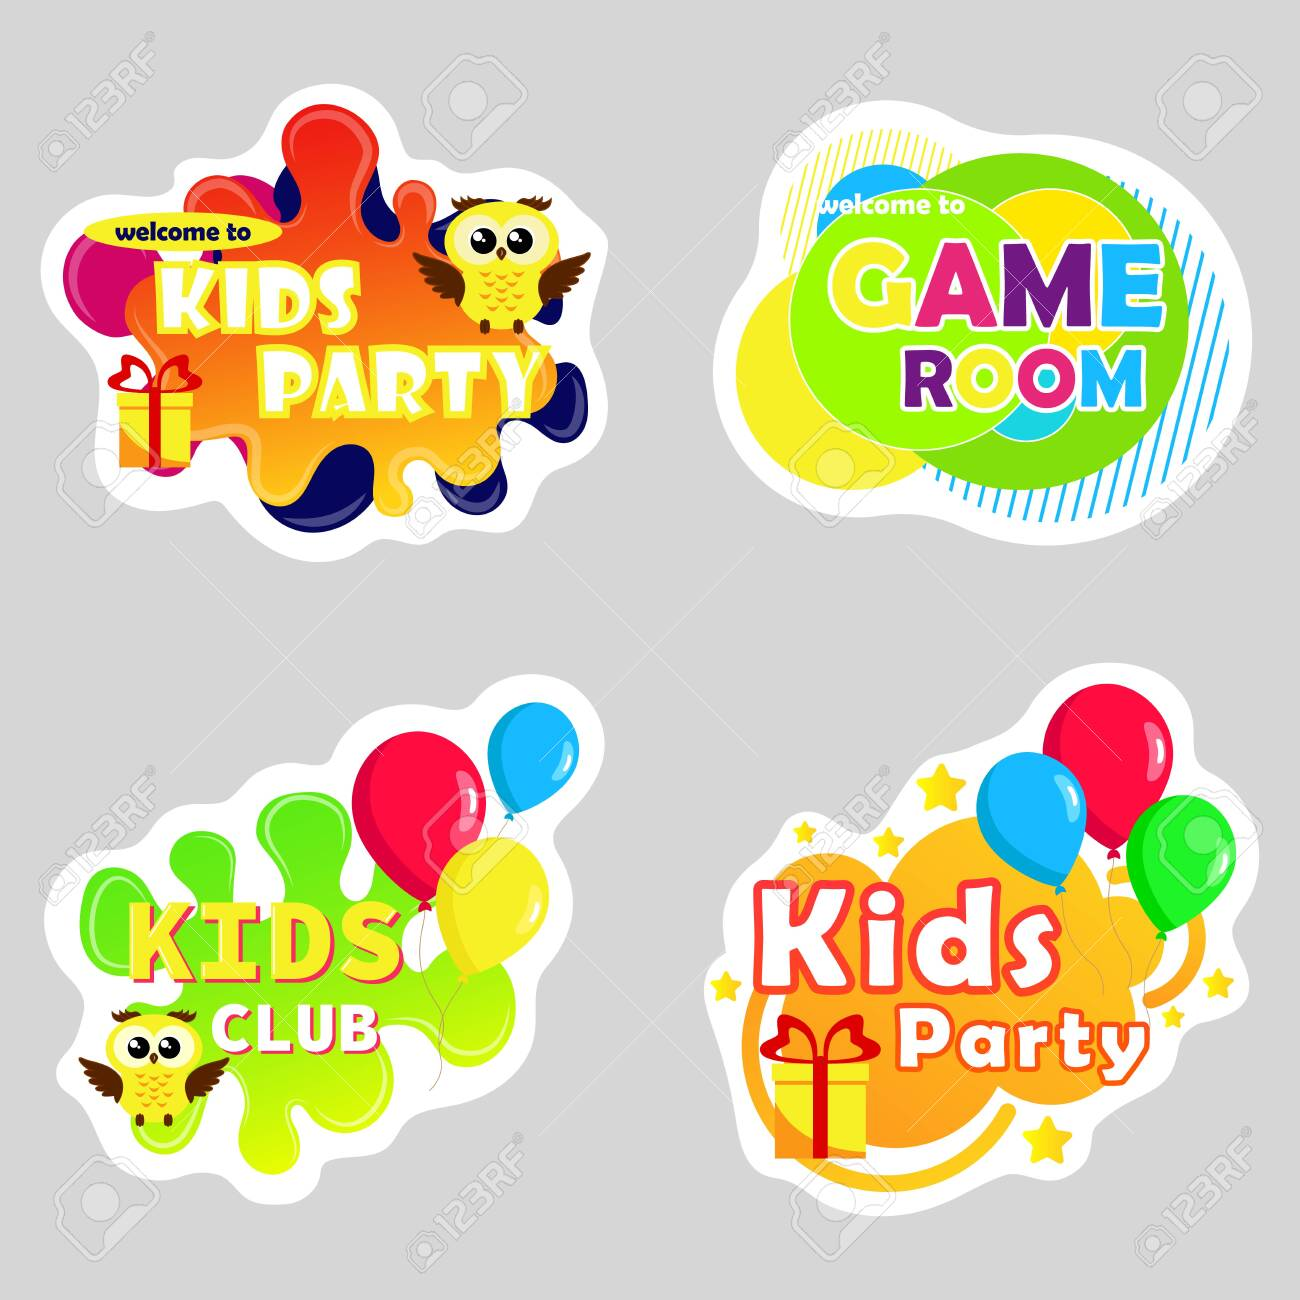 Kids zone vector cartoon . Funny cartoon frames. Bright decoration element for childish party. Sign for children's game room. - 149732965